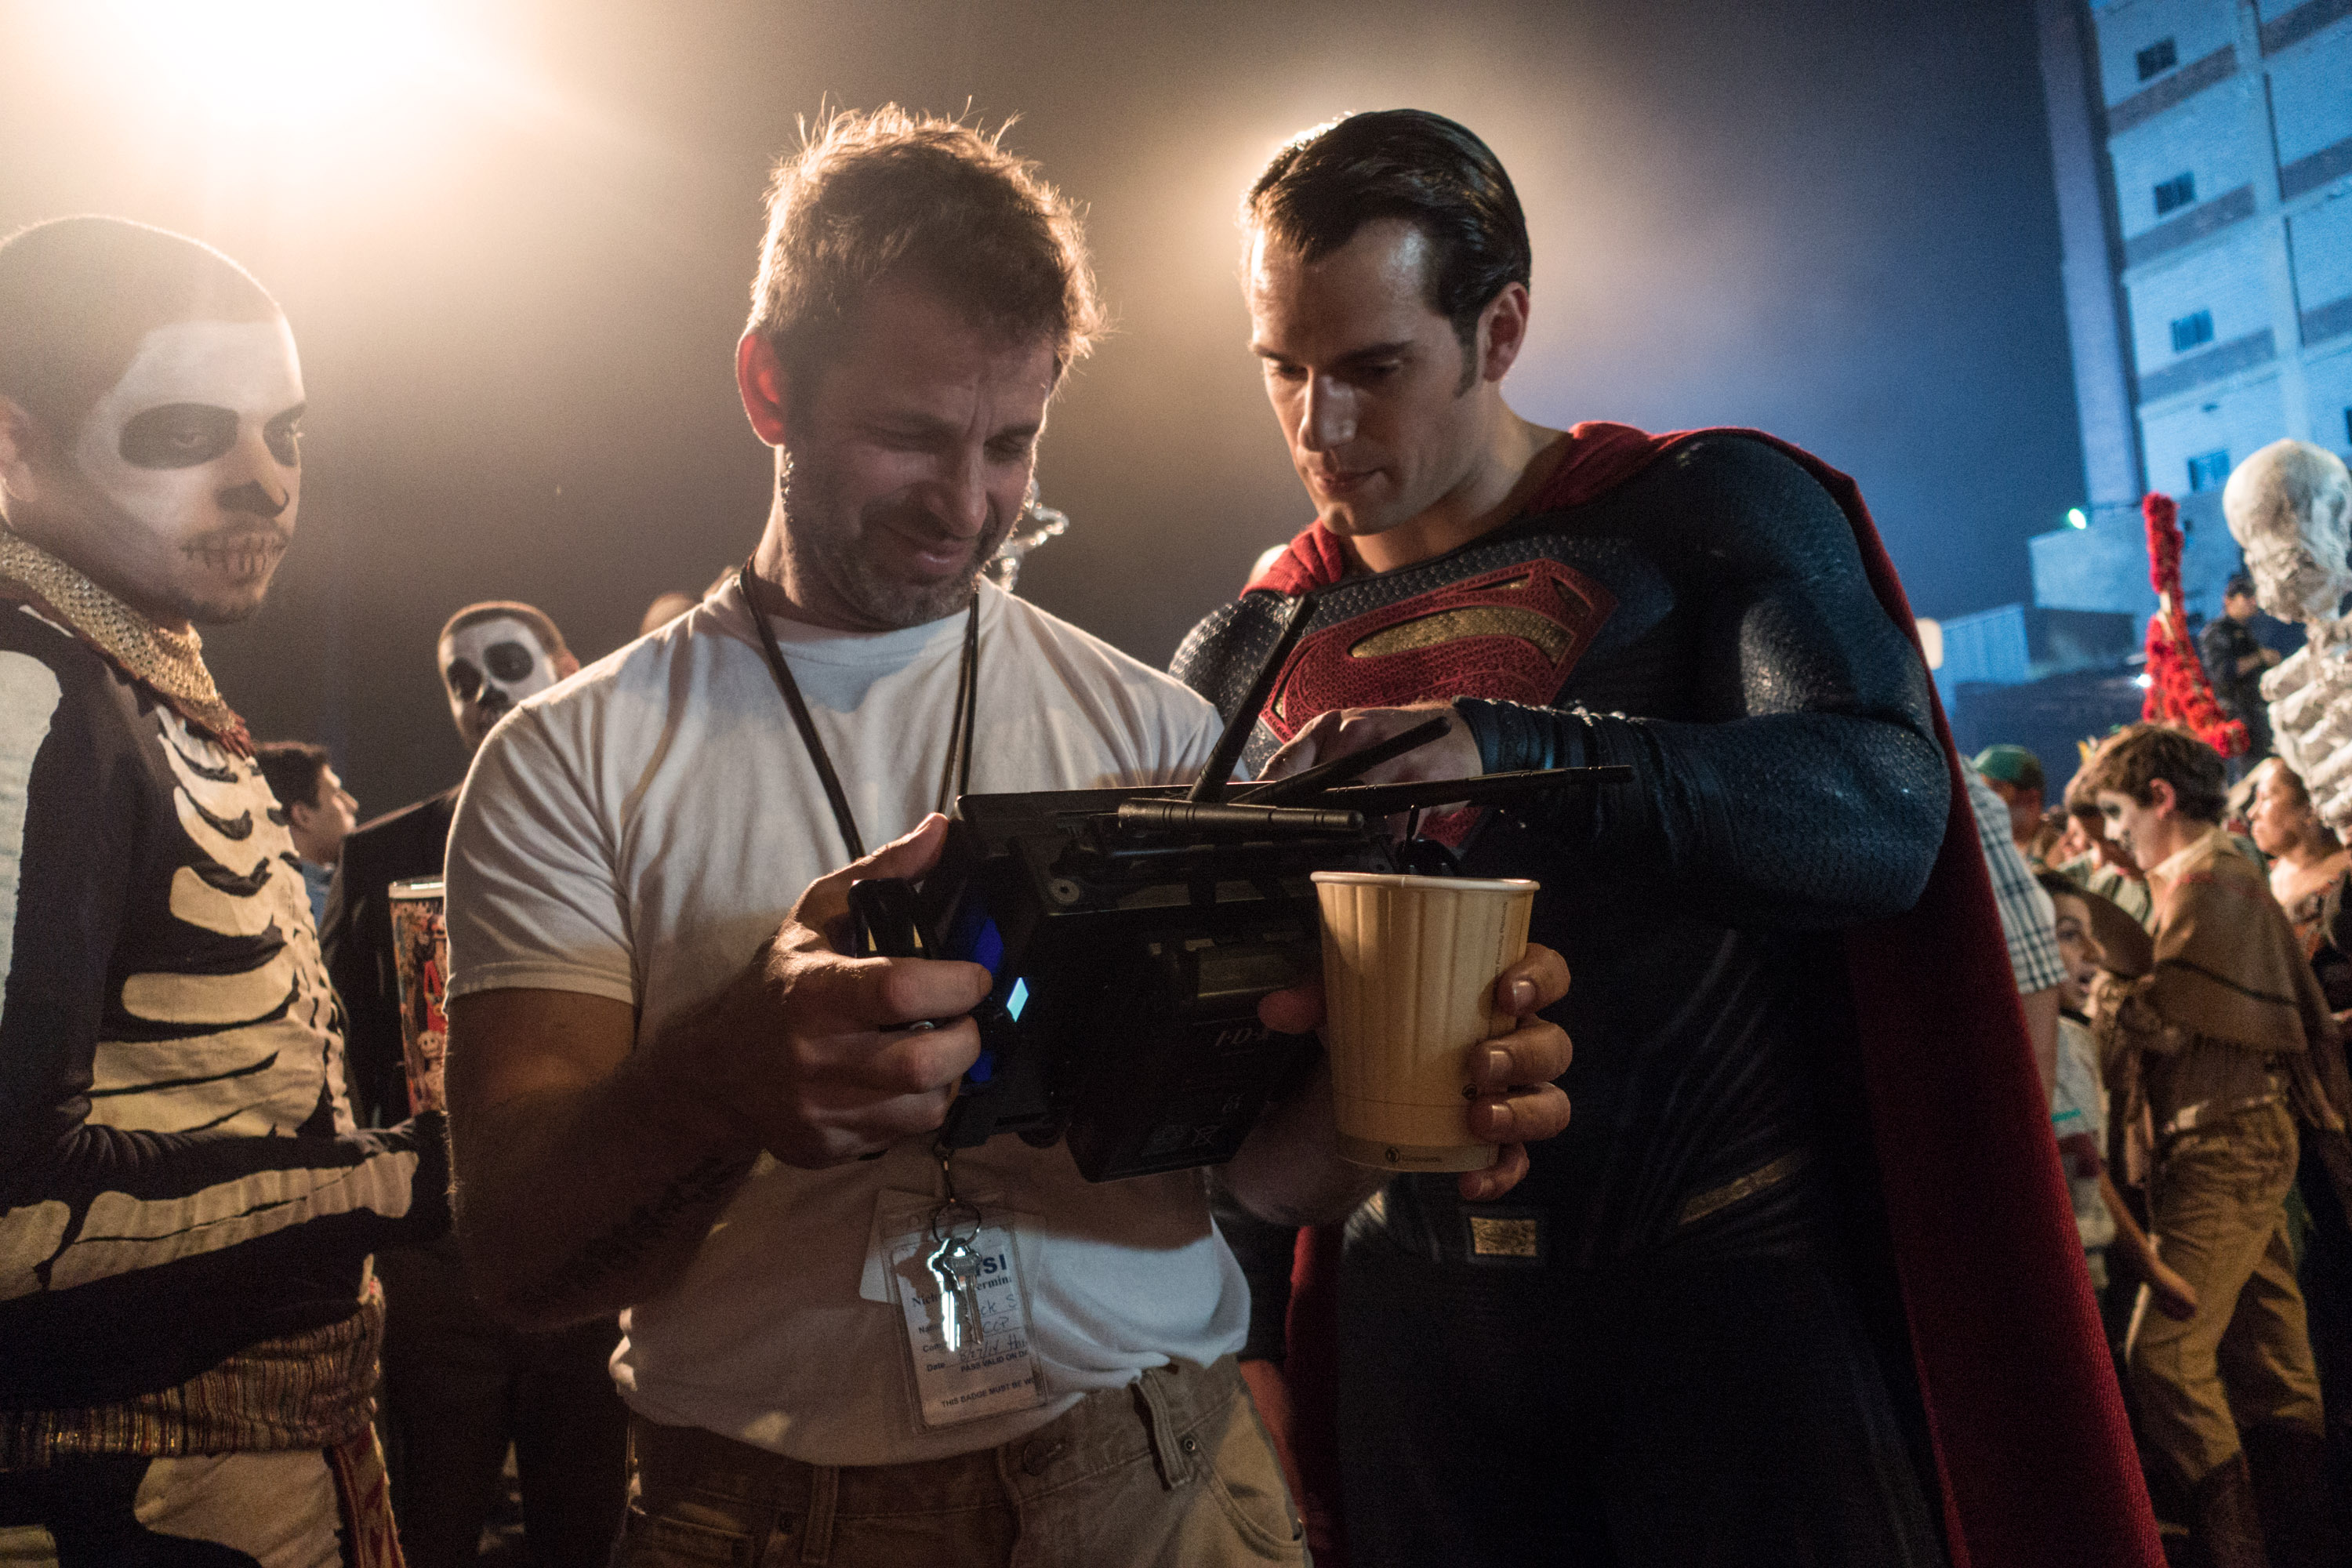 Zack Snyder may have actually been fired from Justice League screenshot